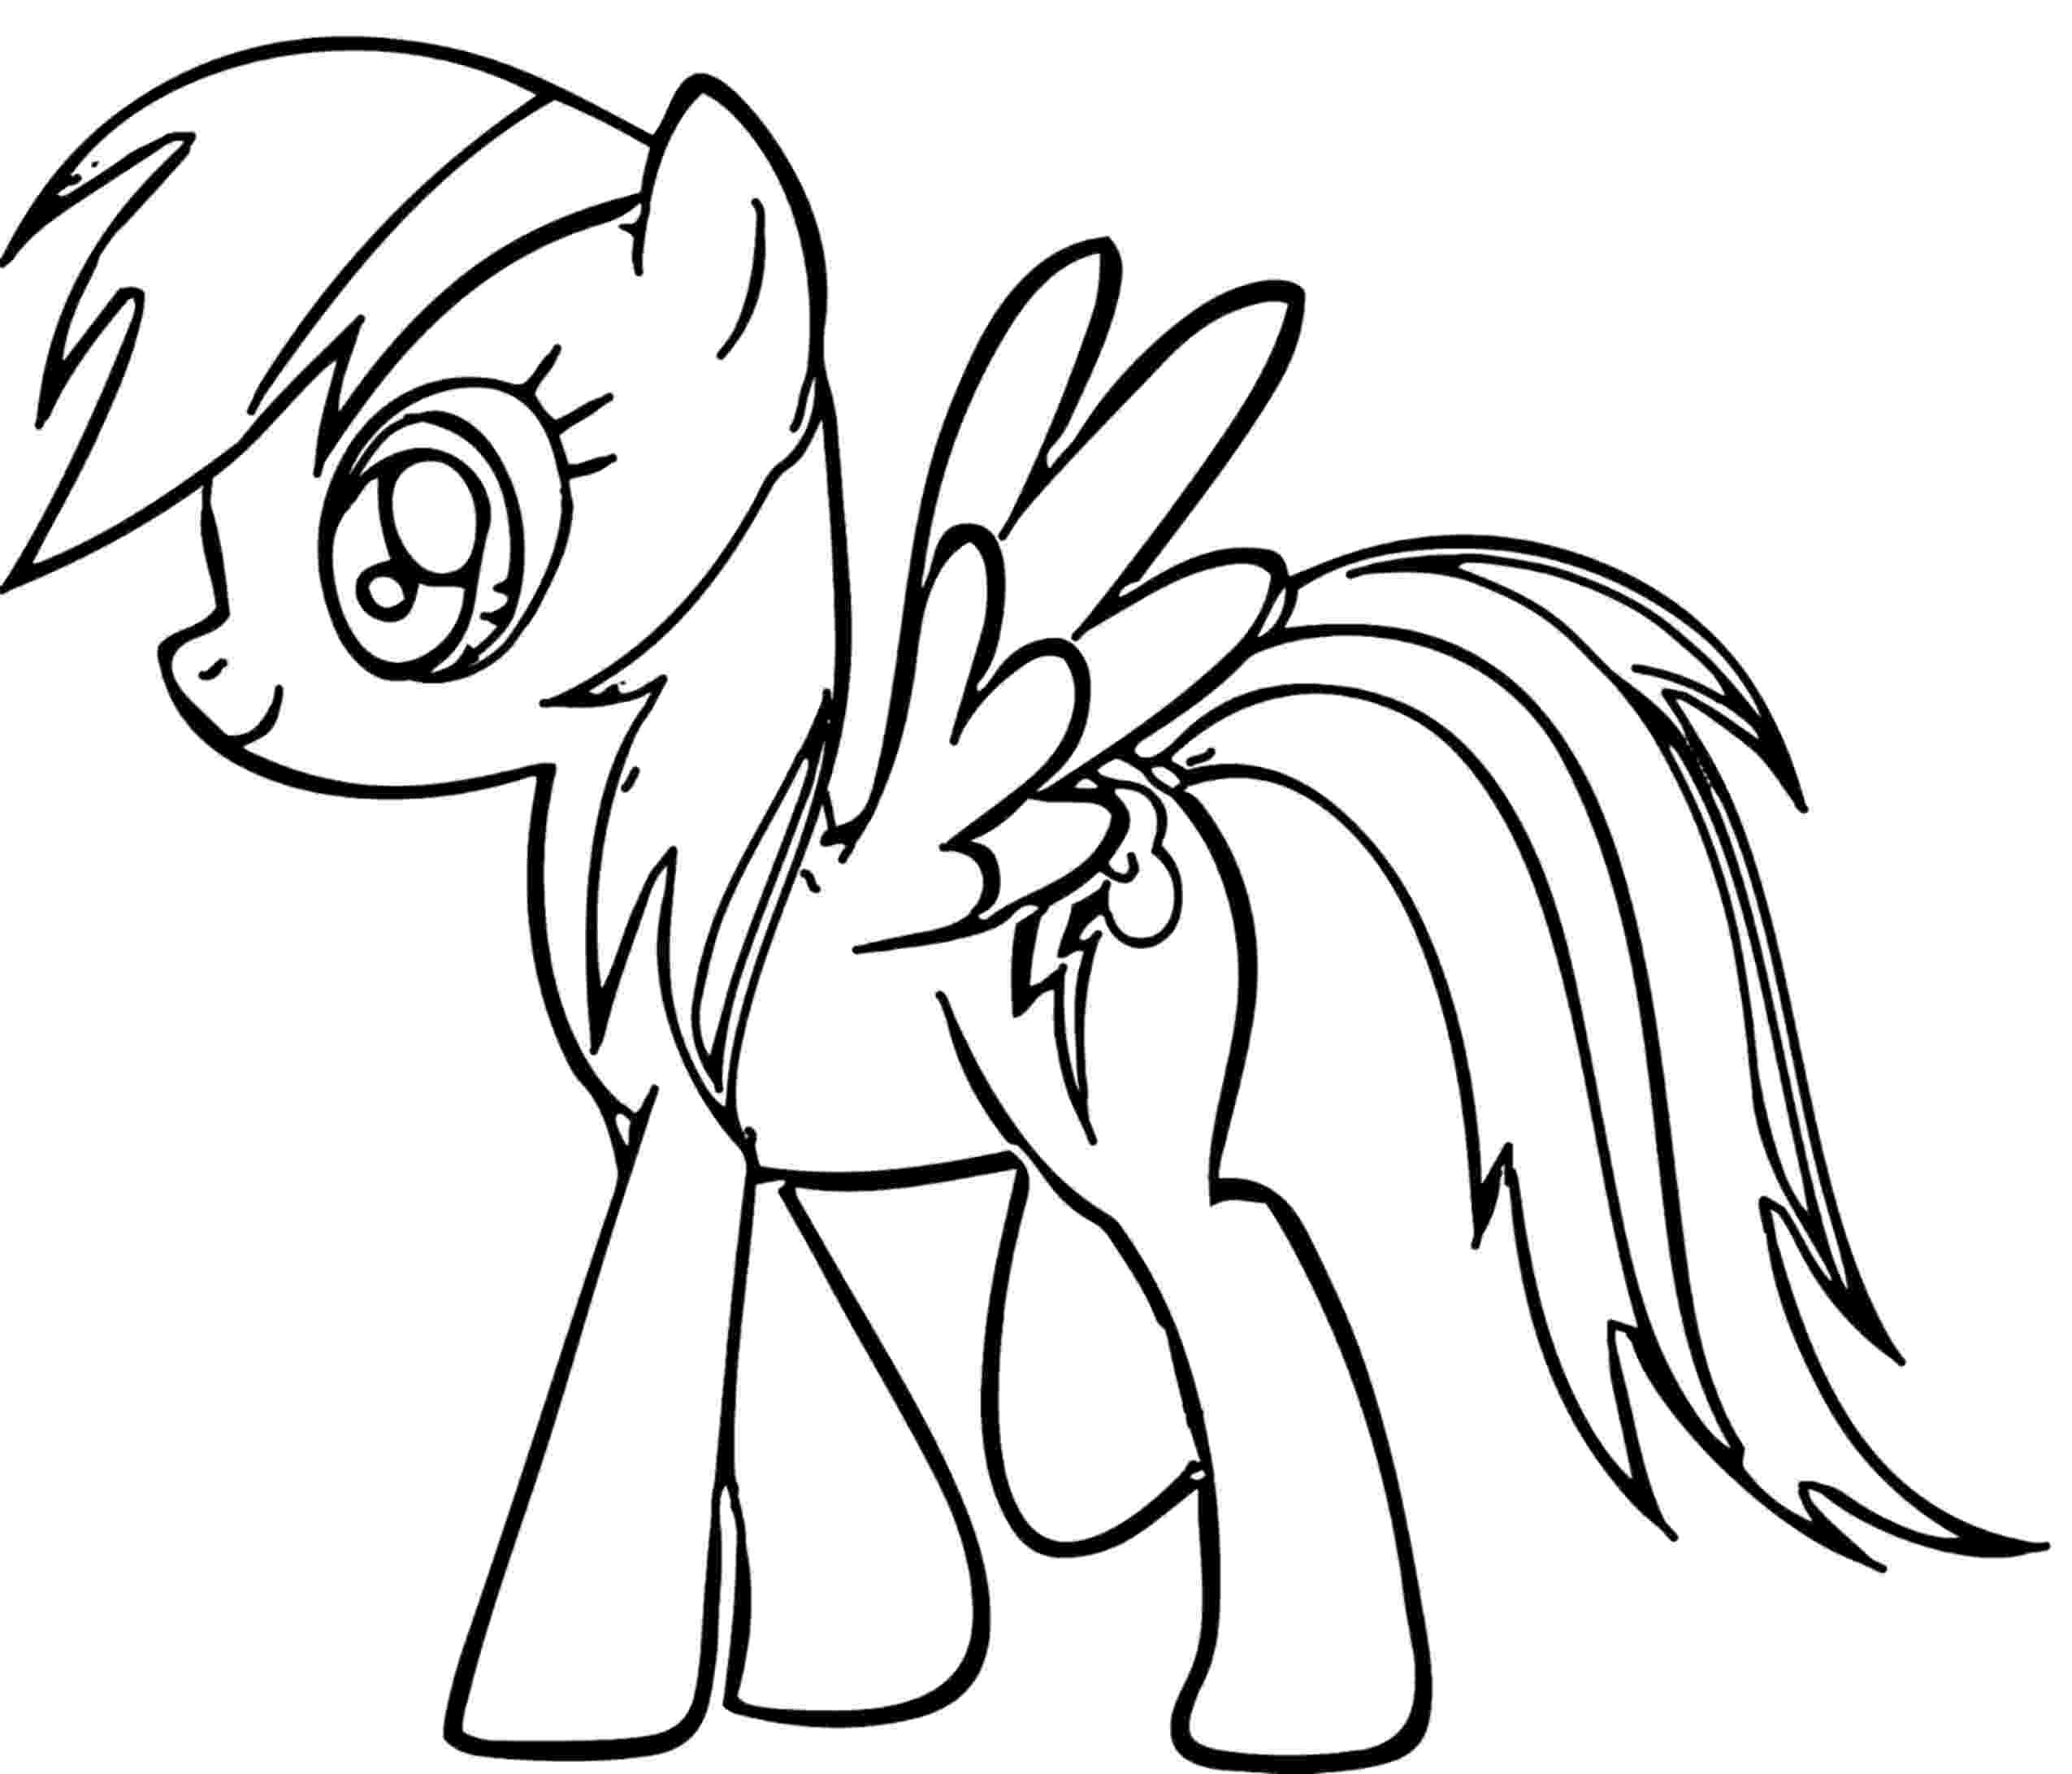 coloring pages rainbow dash rainbow dash coloring pages best coloring pages for kids rainbow coloring pages dash